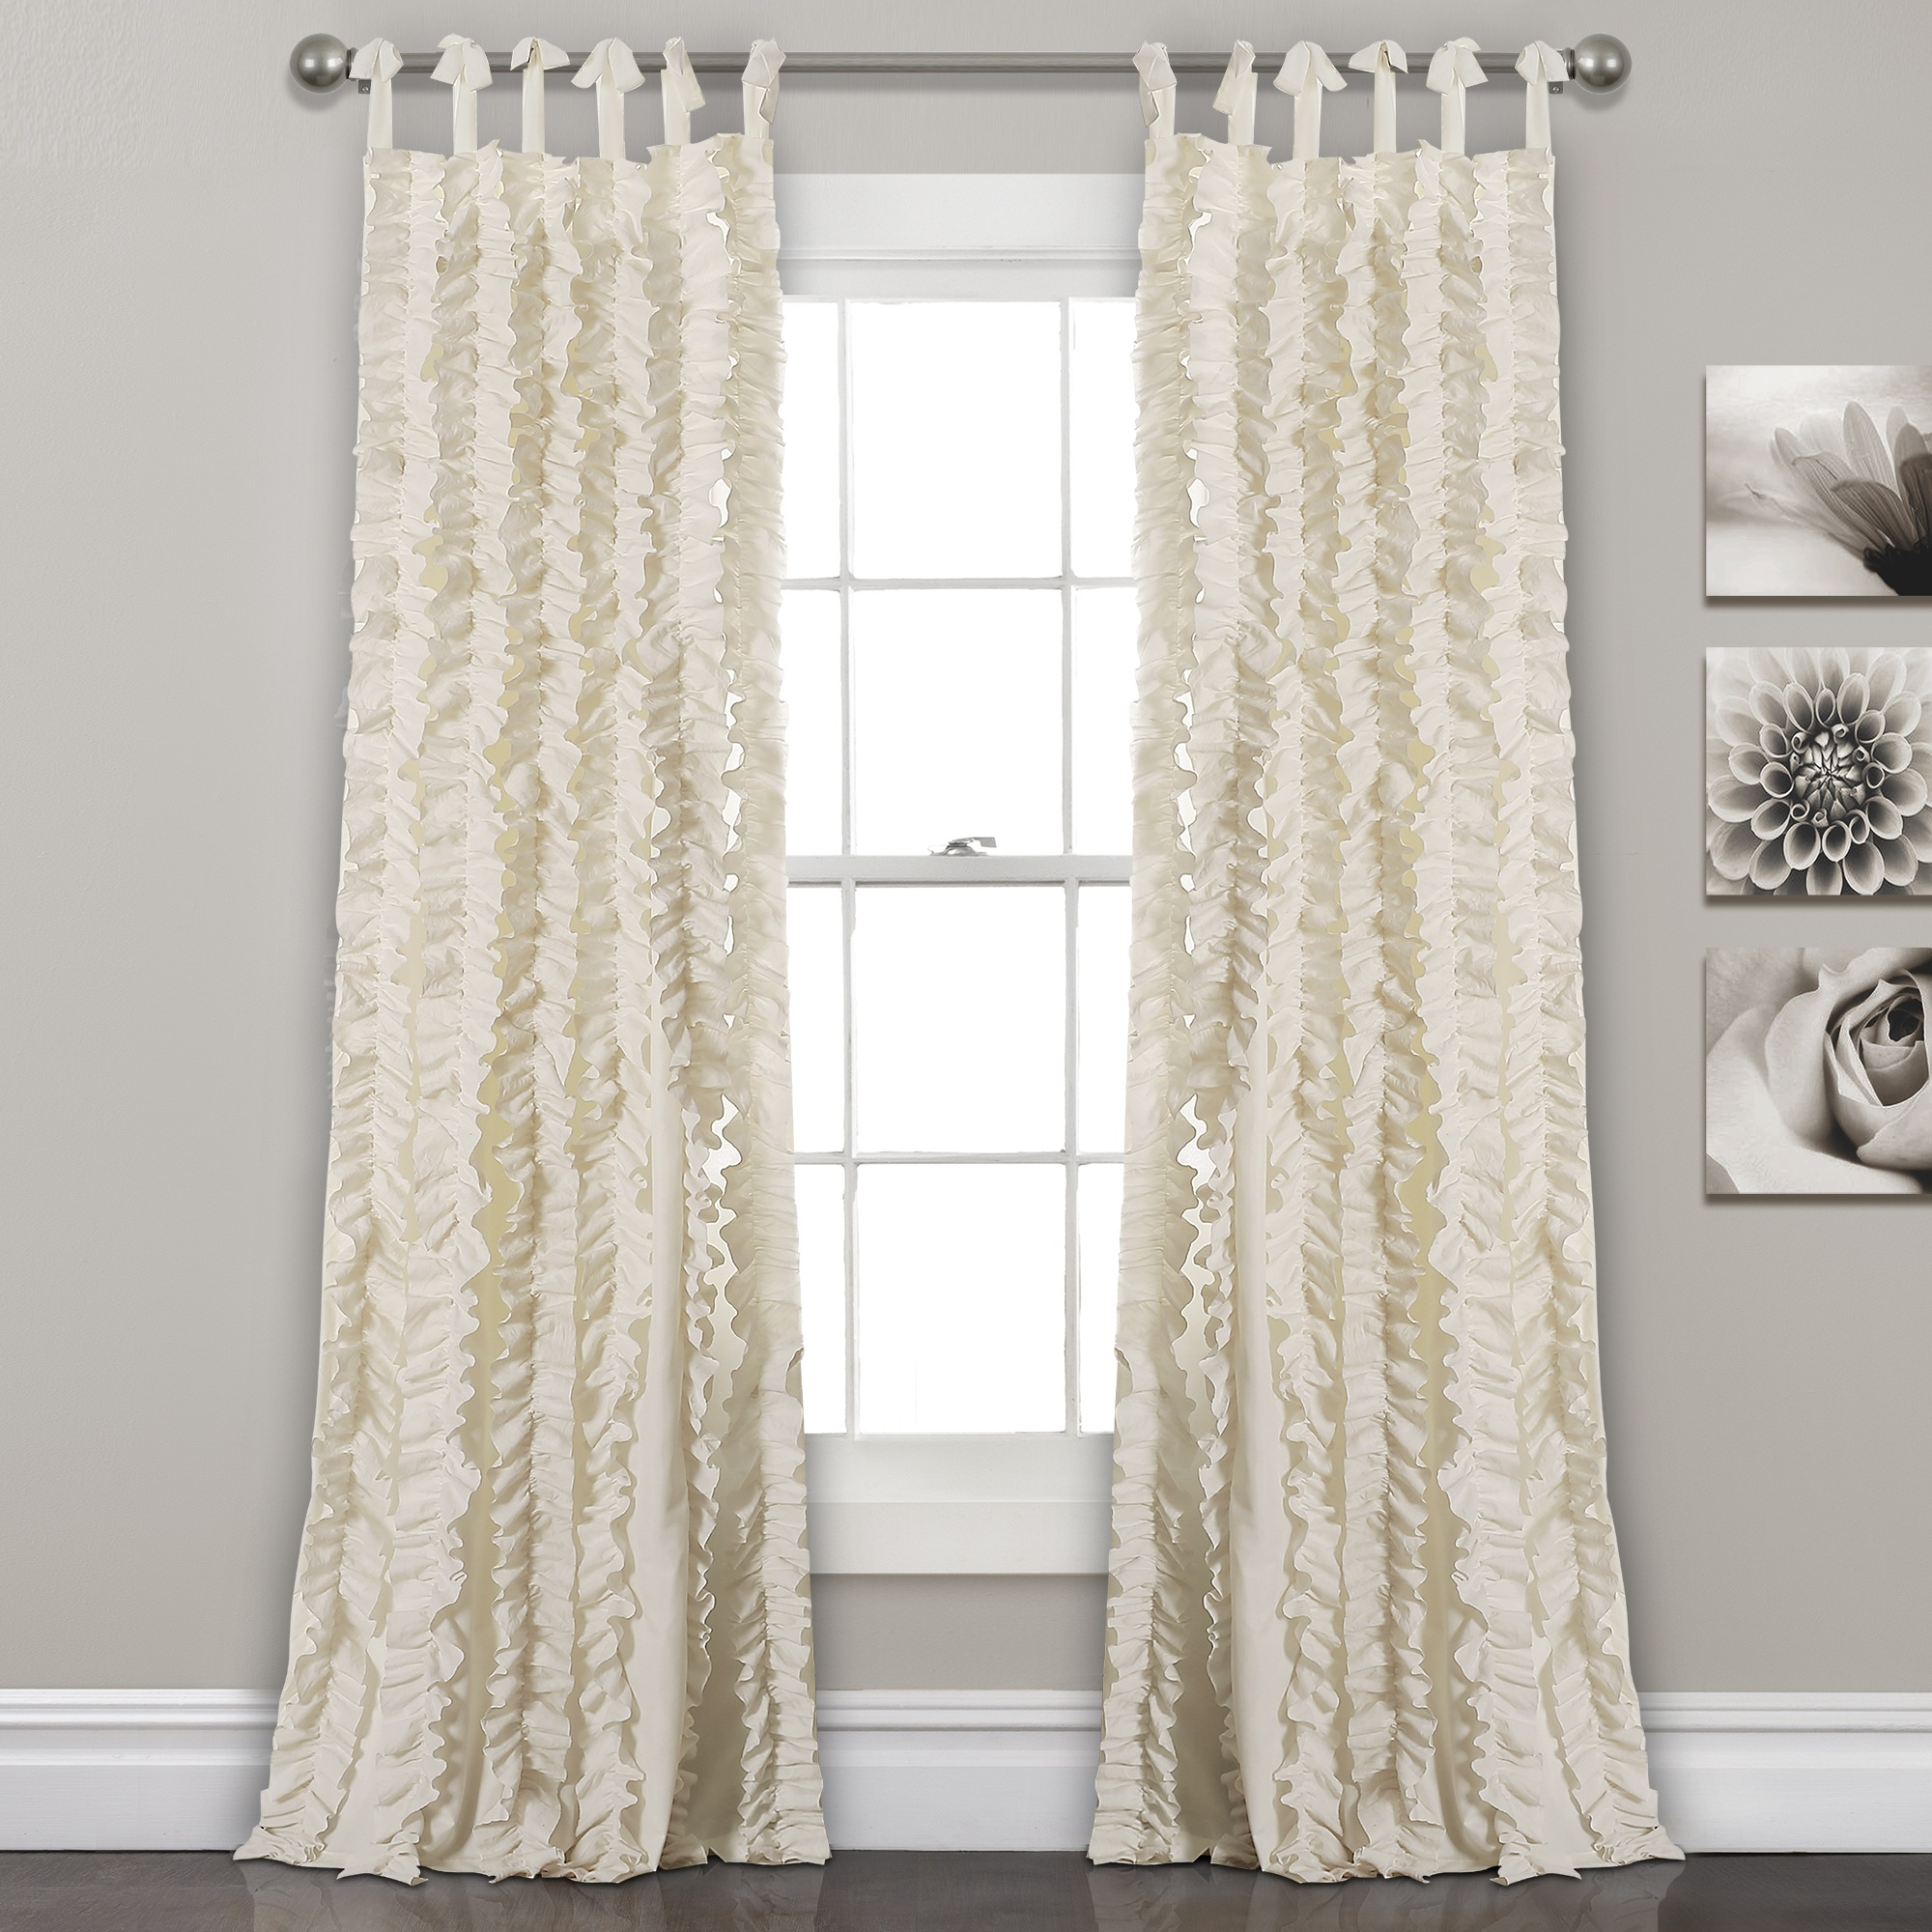 Ivory 84'x40′ Sophia Ruffle Window Curtain Set For Julia Striped Room Darkening Window Curtain Panel Pairs (View 18 of 20)